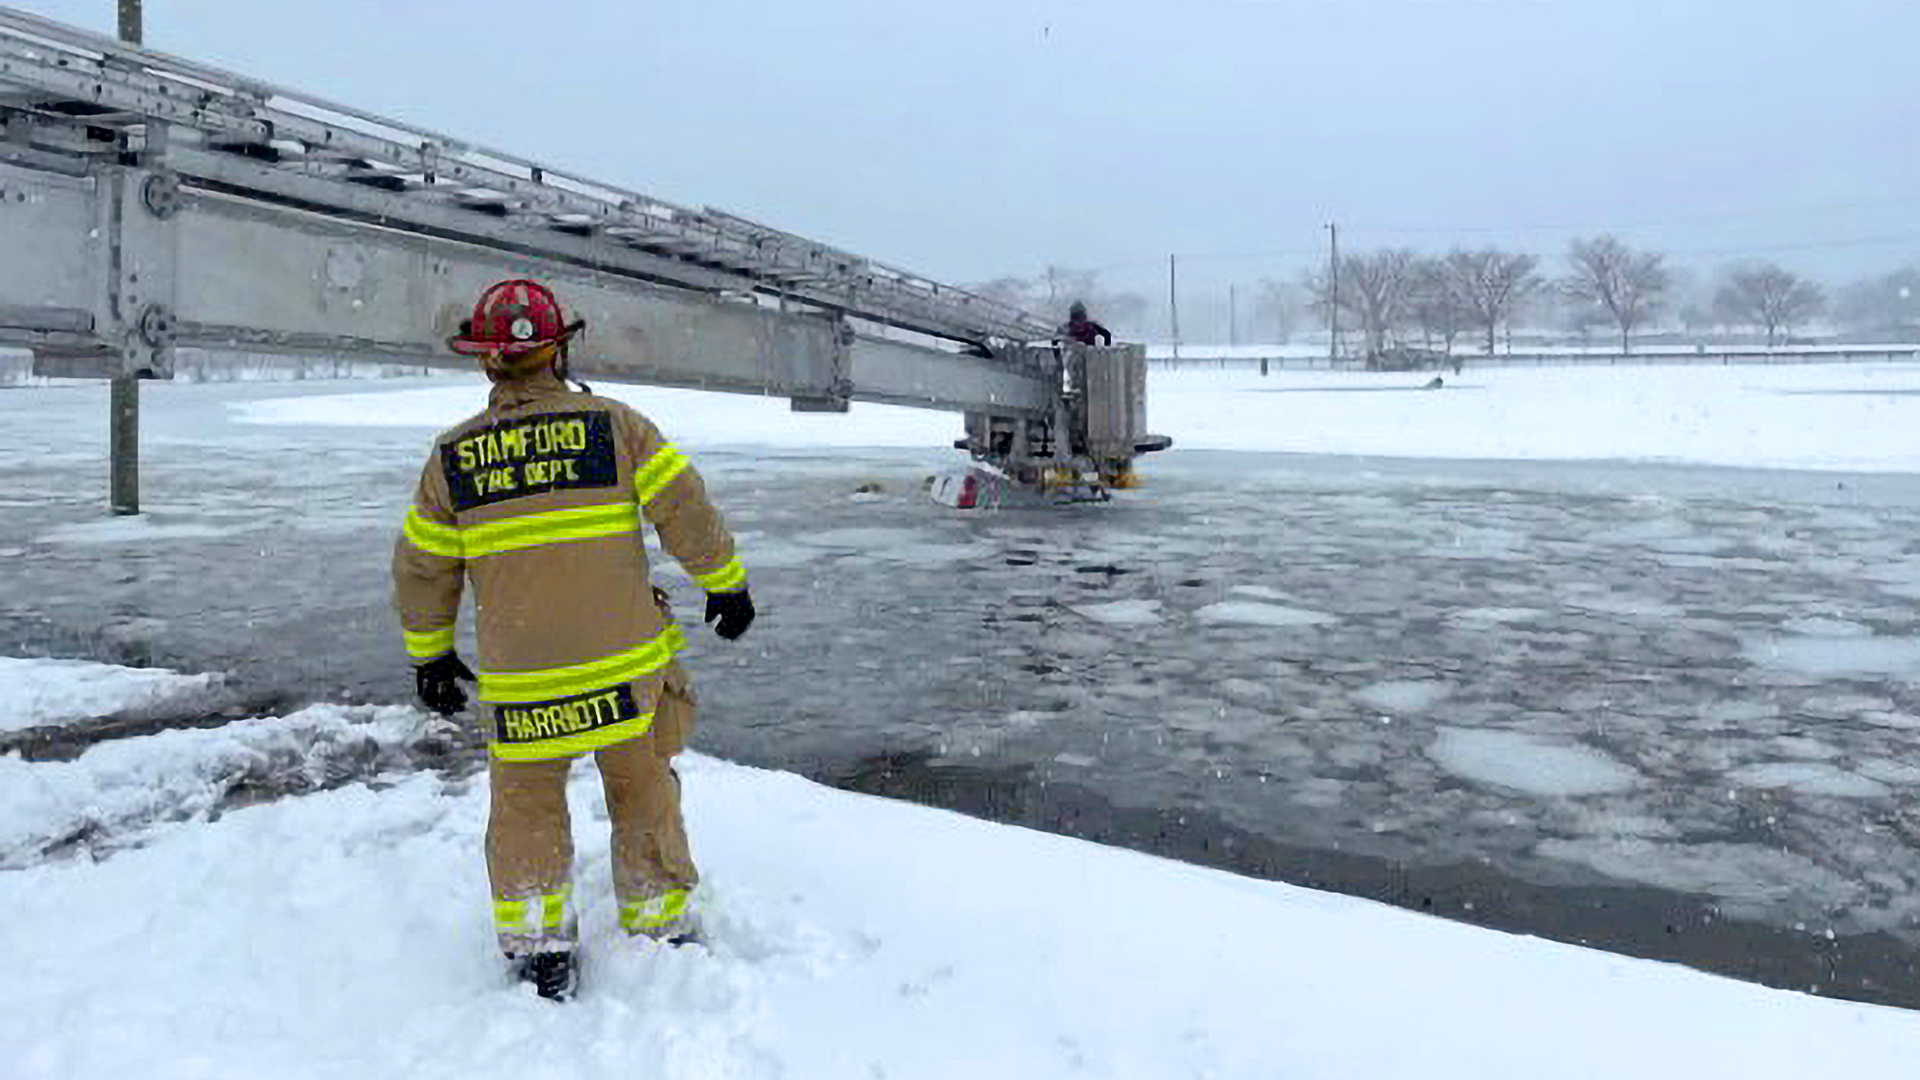 VIDEO: Two people rescued from the submerged truck